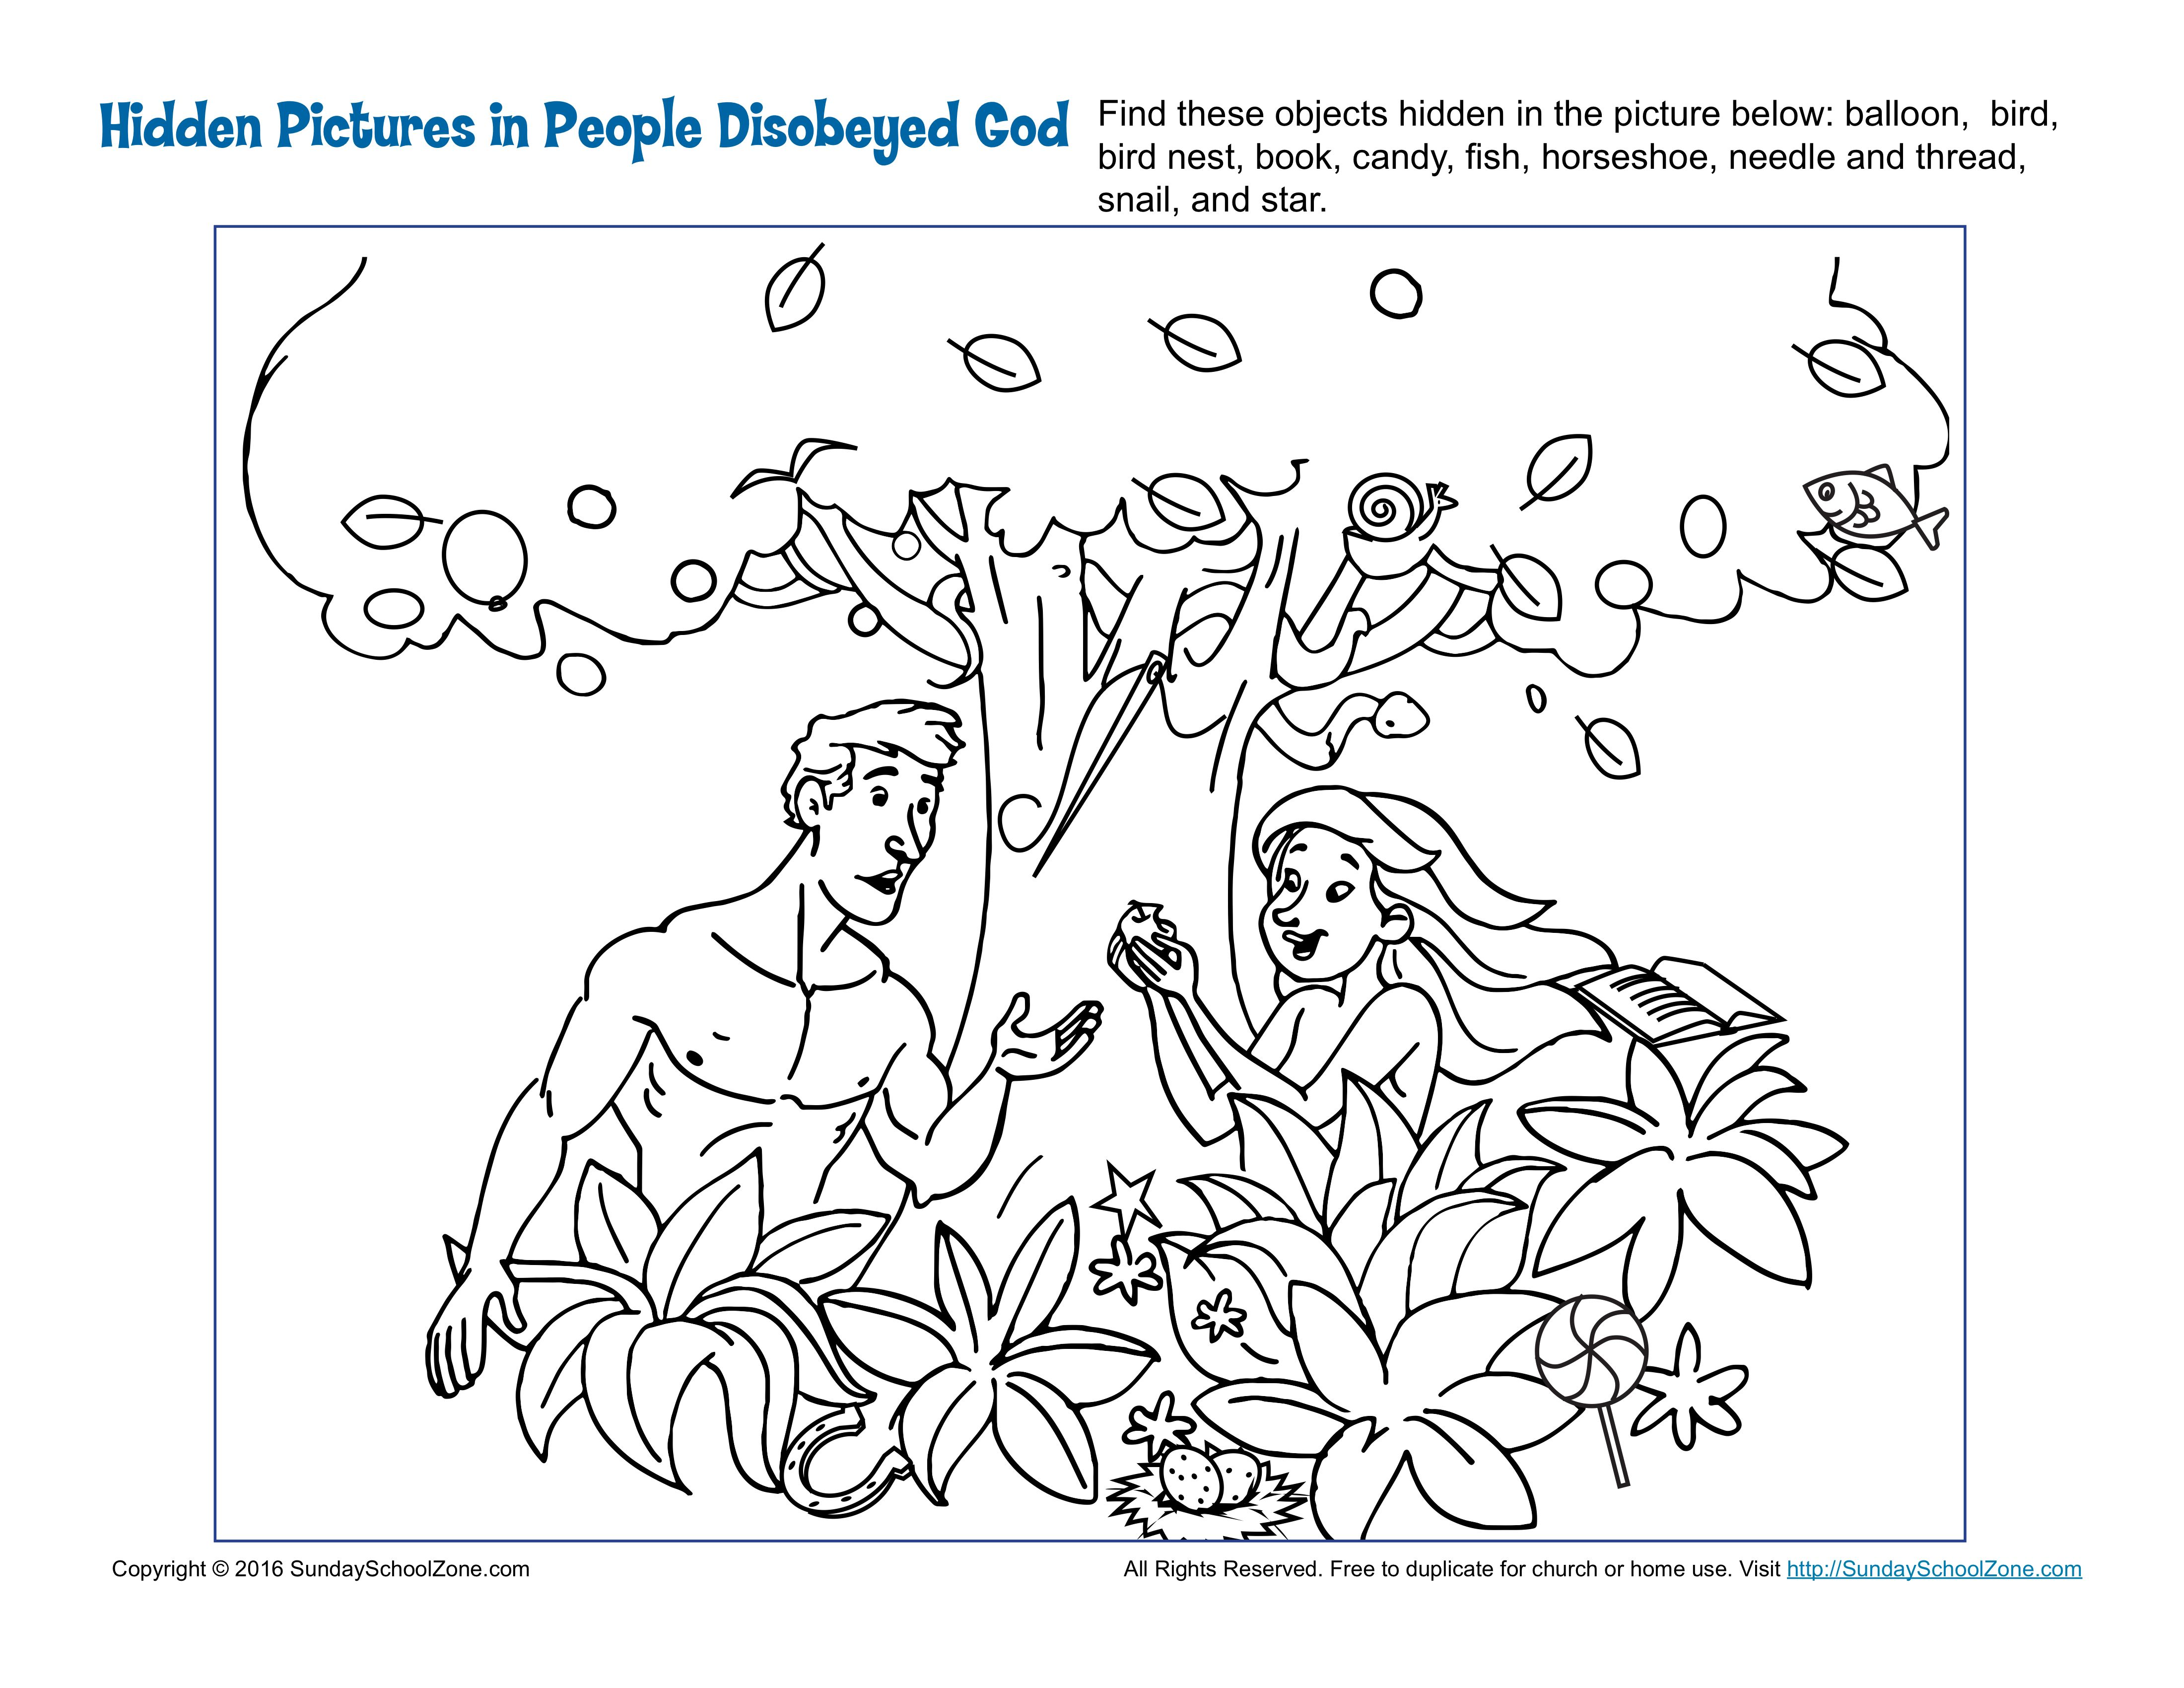 People Disobeyed God Hidden Pictures Activity Children S Bible Activities Sunday School Activities For Kids Childrens Bible Activities Adam And Eve Sunday School Coloring Pages